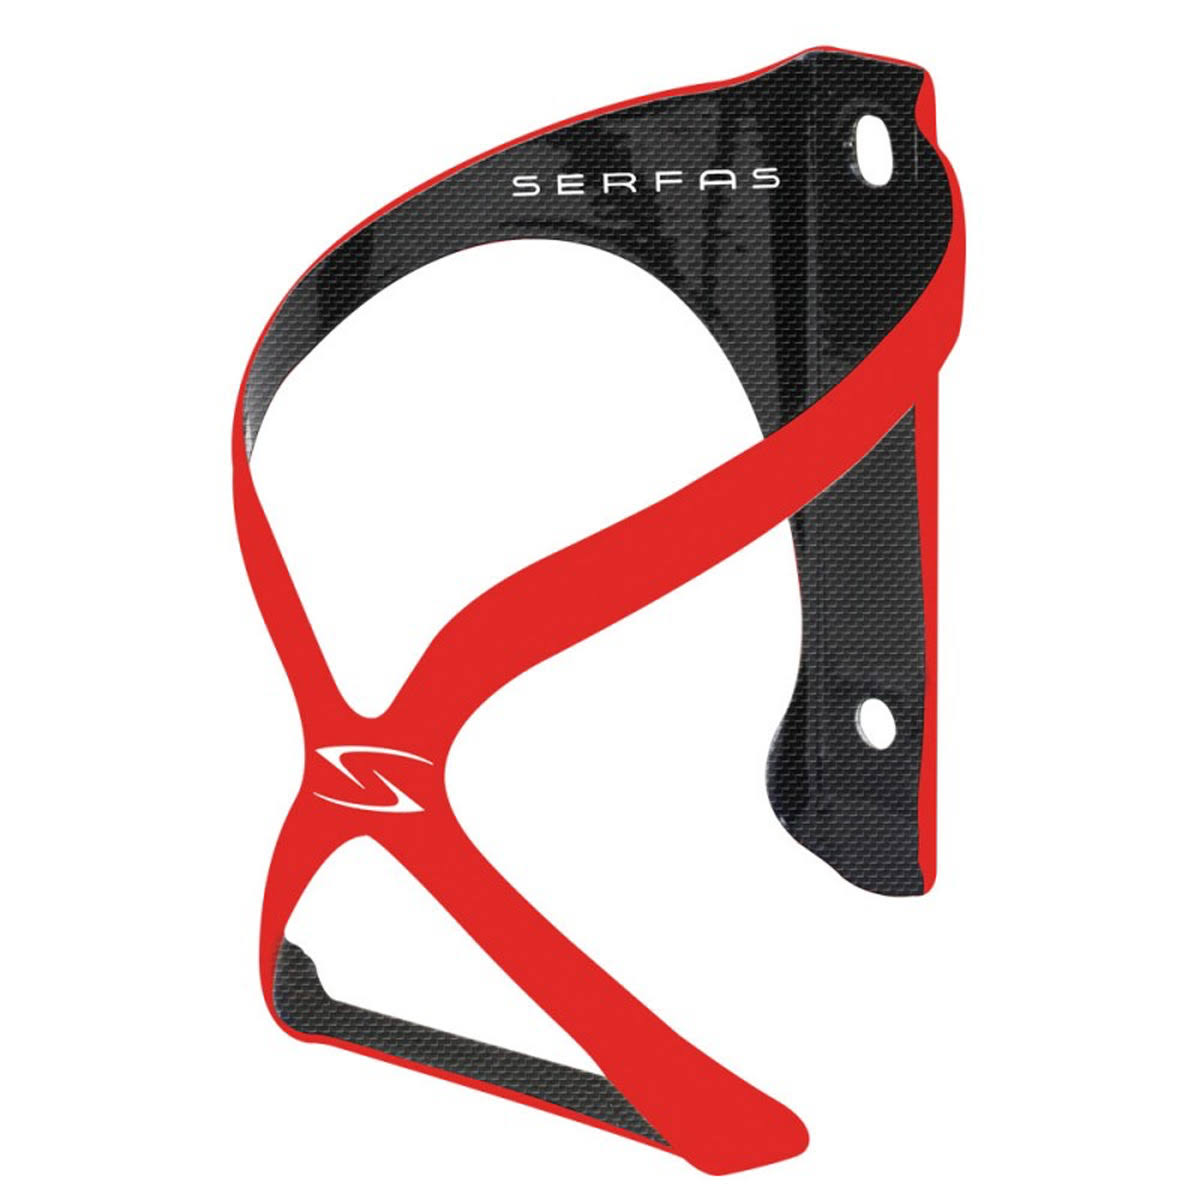 Serfas Spyre Carbon Water Bottle Cage - CC-800 (Red)